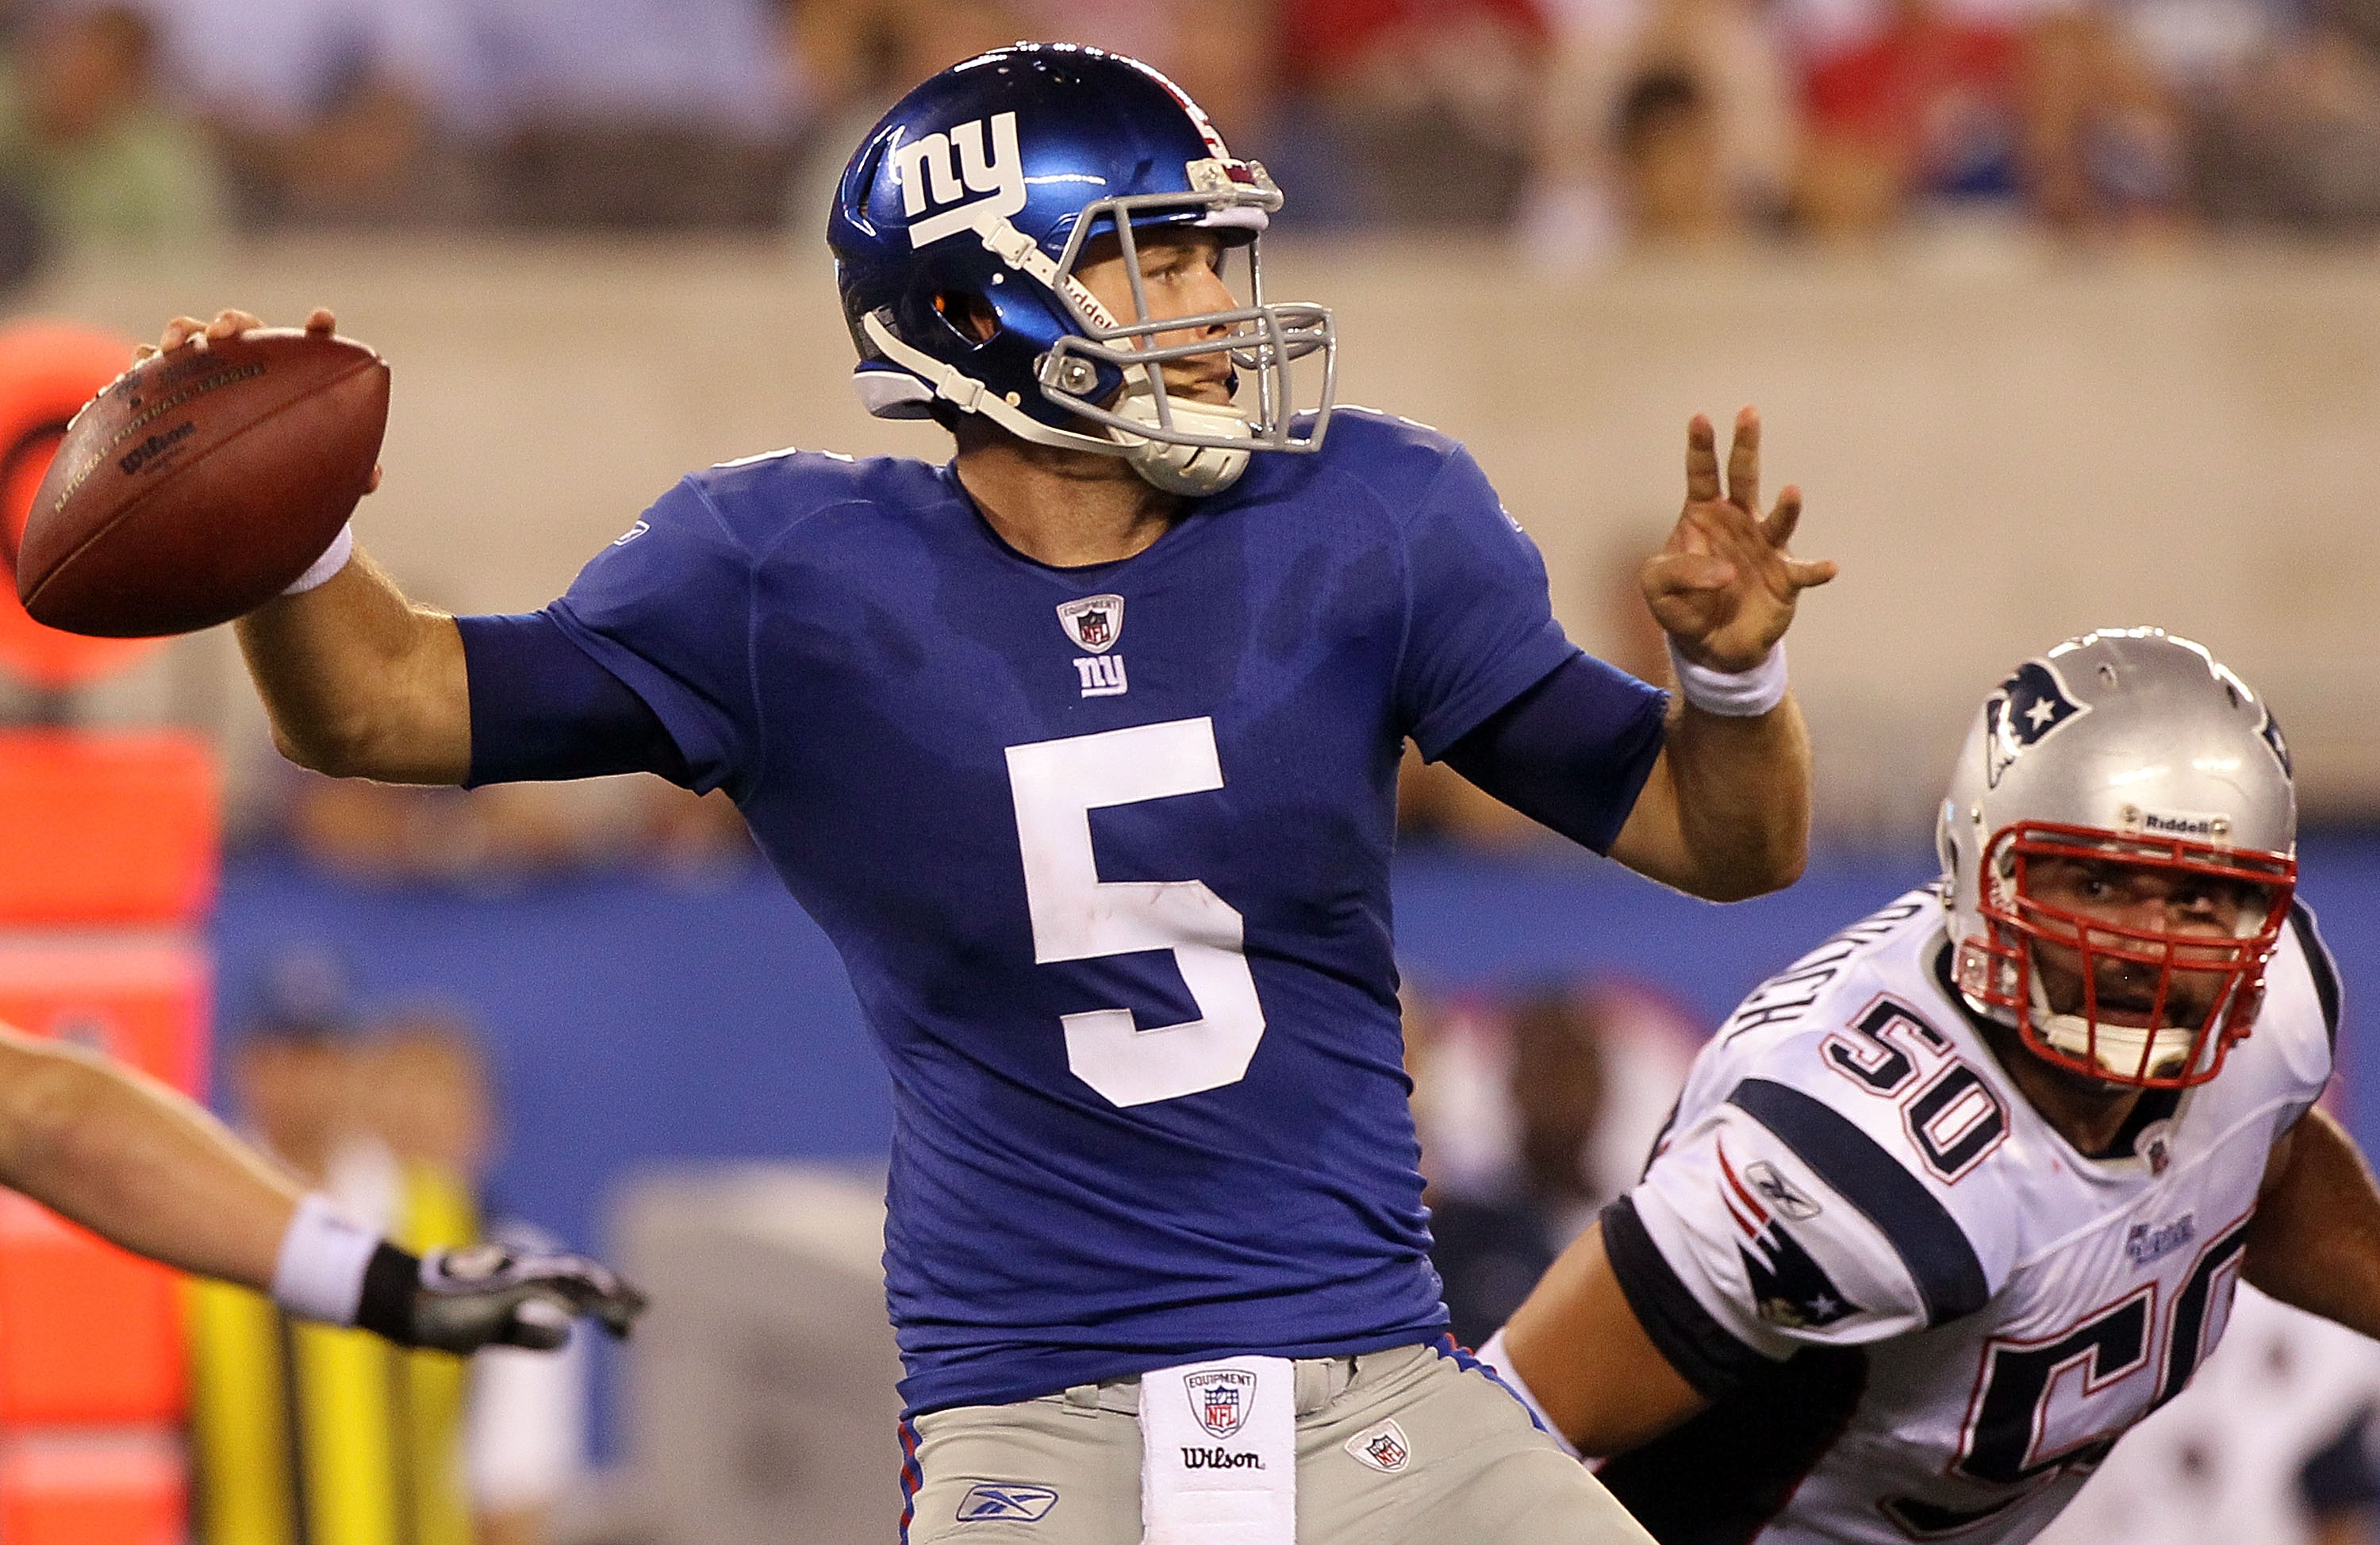 EAST RUTHERFORD, NJ - SEPTEMBER 02:  Rhett Bomar #5 of the New York Giants throws a pass against the New England Patriots on September 2, 2010 at the New Meadowlands Stadium in East Rutherford, New Jersey. The Giants defeated the Patriots 20-17.  (Photo b